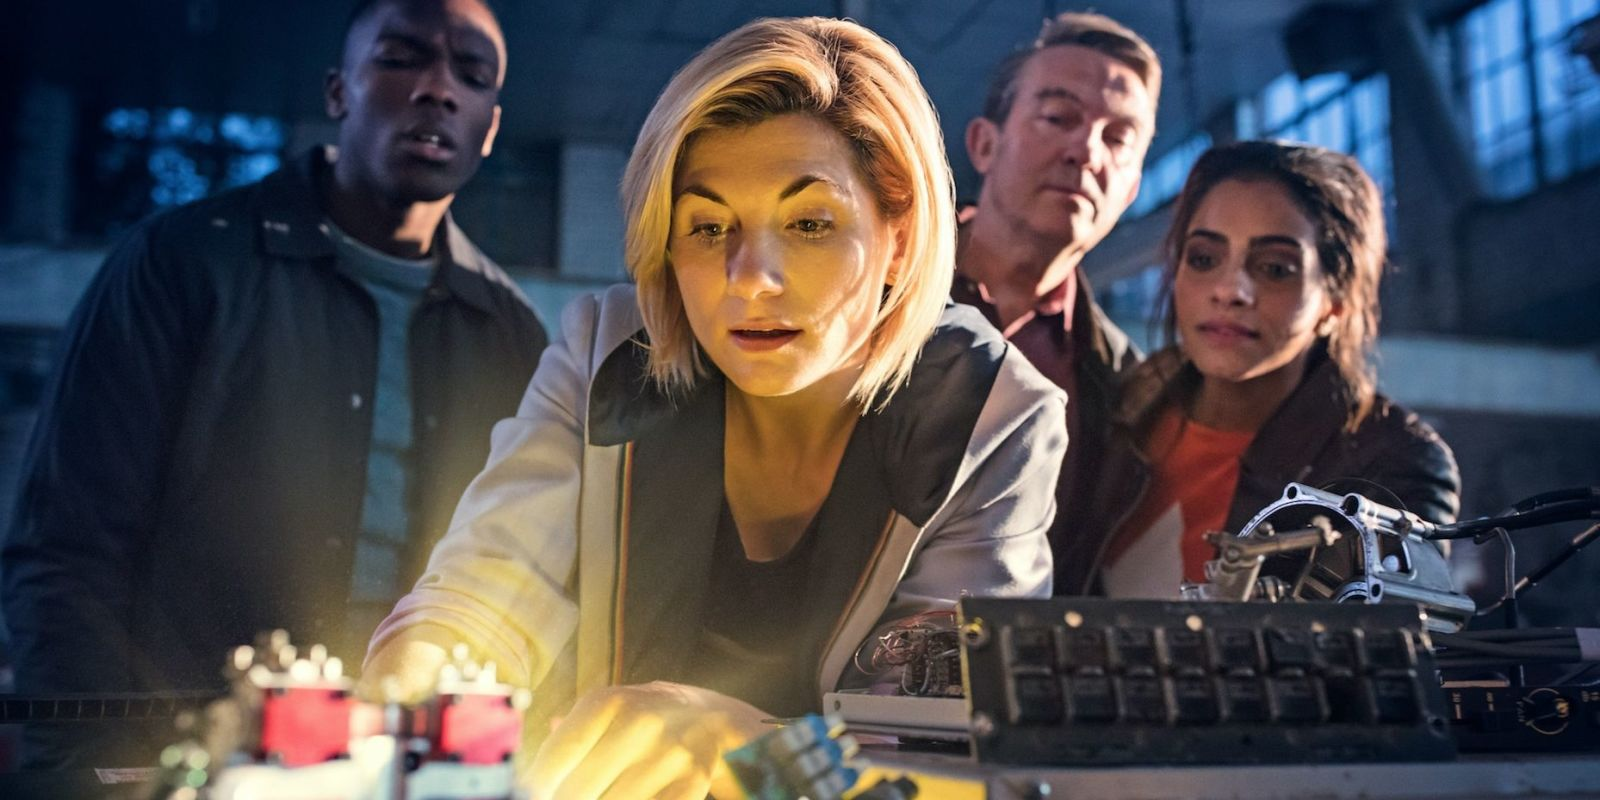 Doctor Who season 11 writers revealed: Here's who'll join Chris Chibnall on Jodie Whittaker's first series